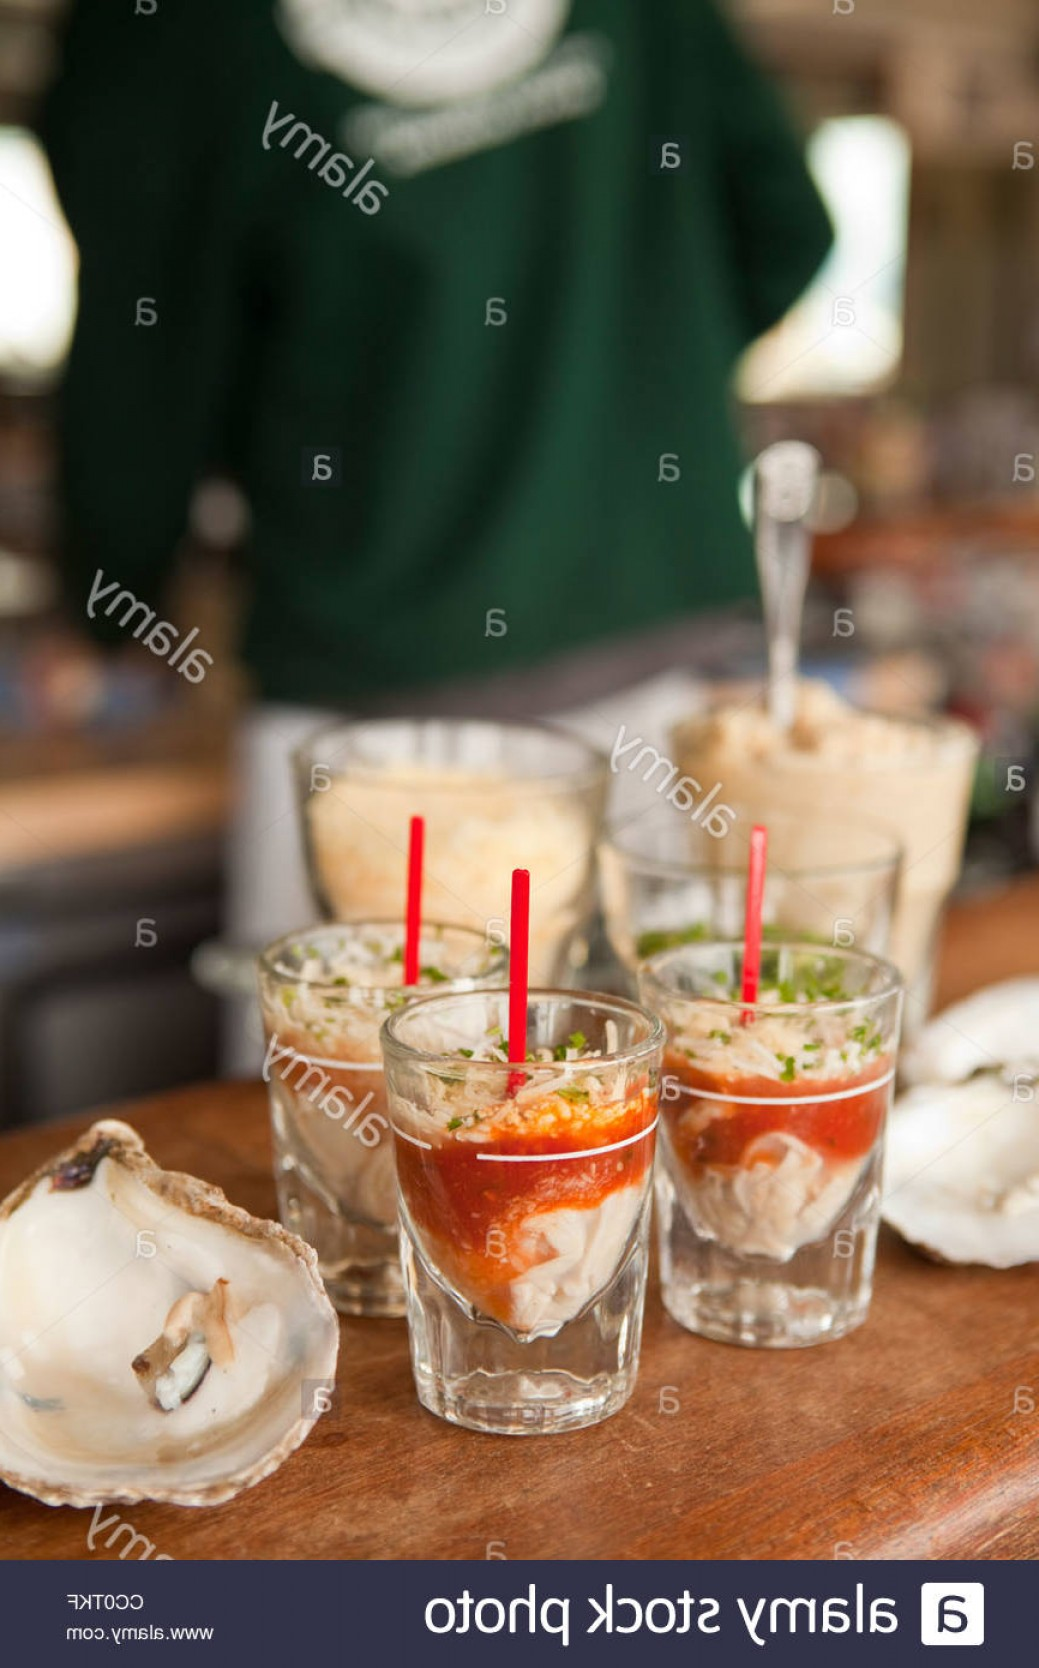 Vector Oyster Shooter: Stock Photo Oyster Shooters Brophy Bros Restaurant Santa Barbara California United